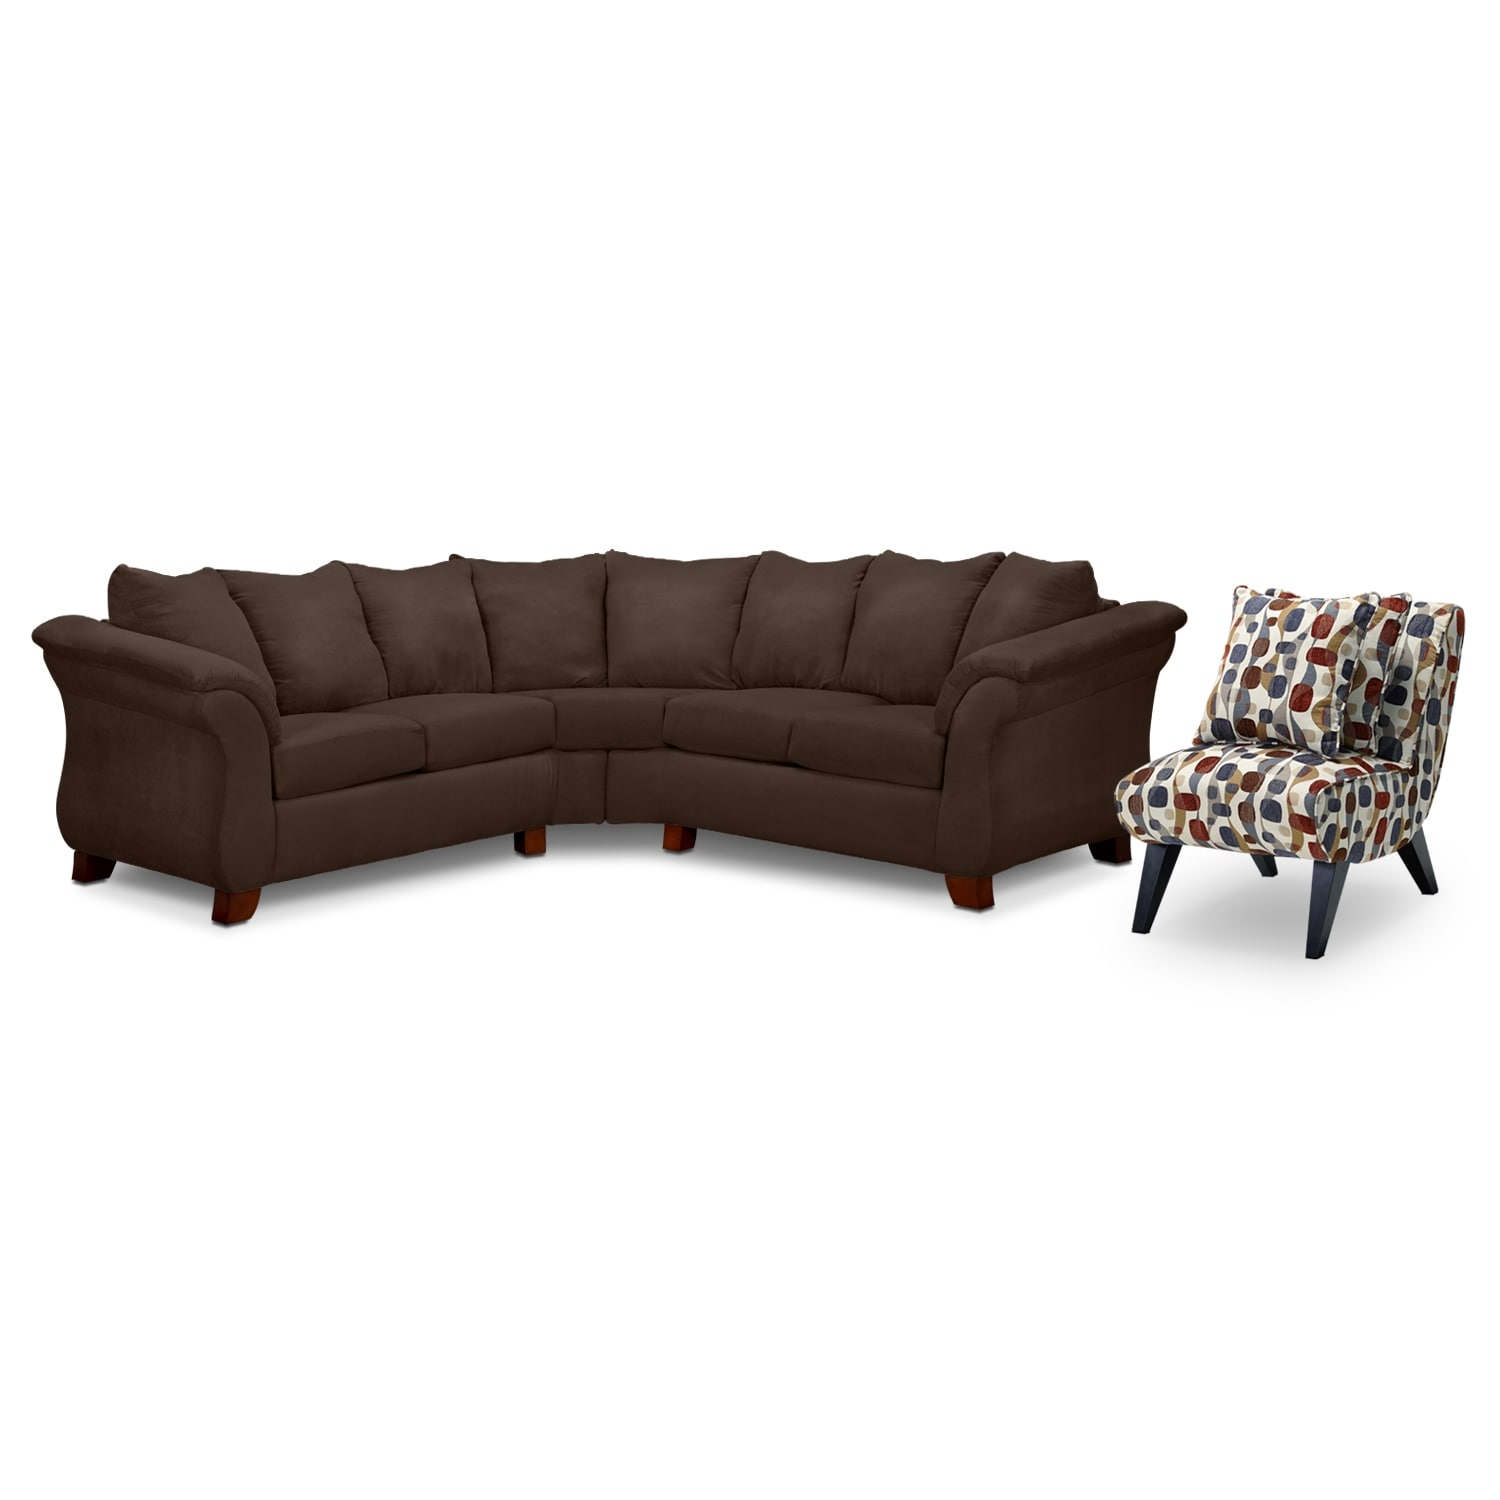 Living Room Furniture - Adrian Chocolate II 2 Pc. Sectional and Accent Chair